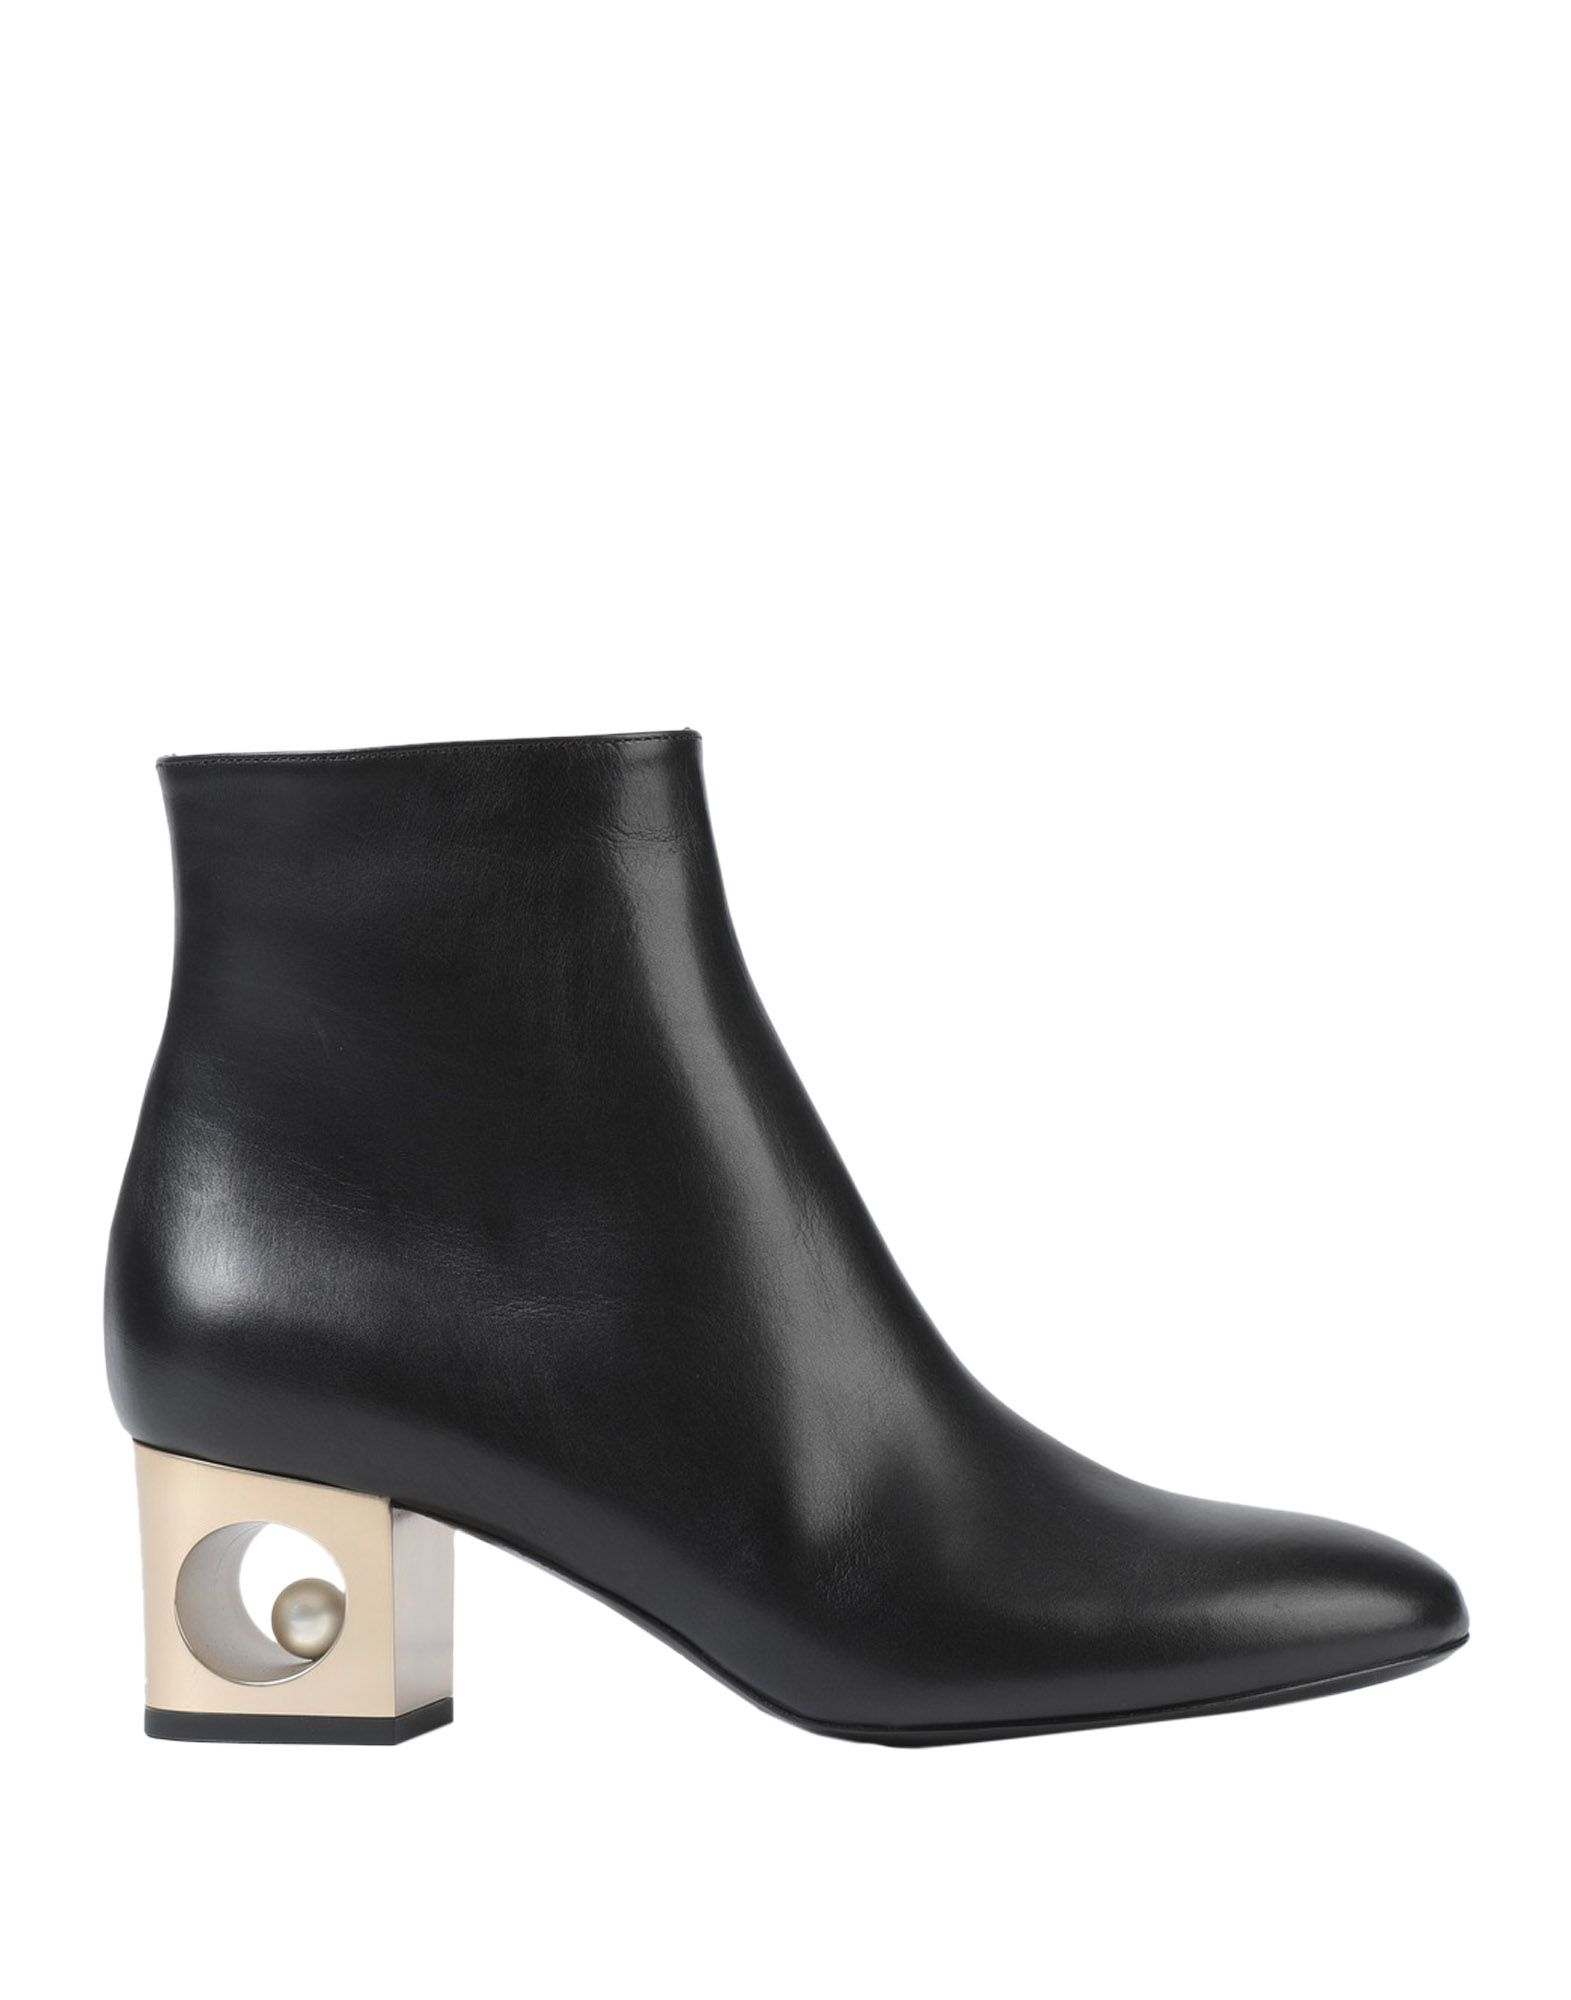 Bottine Coliac Martina Grasselli Femme - Bottines Coliac Martina Grasselli Noir Confortable et belle